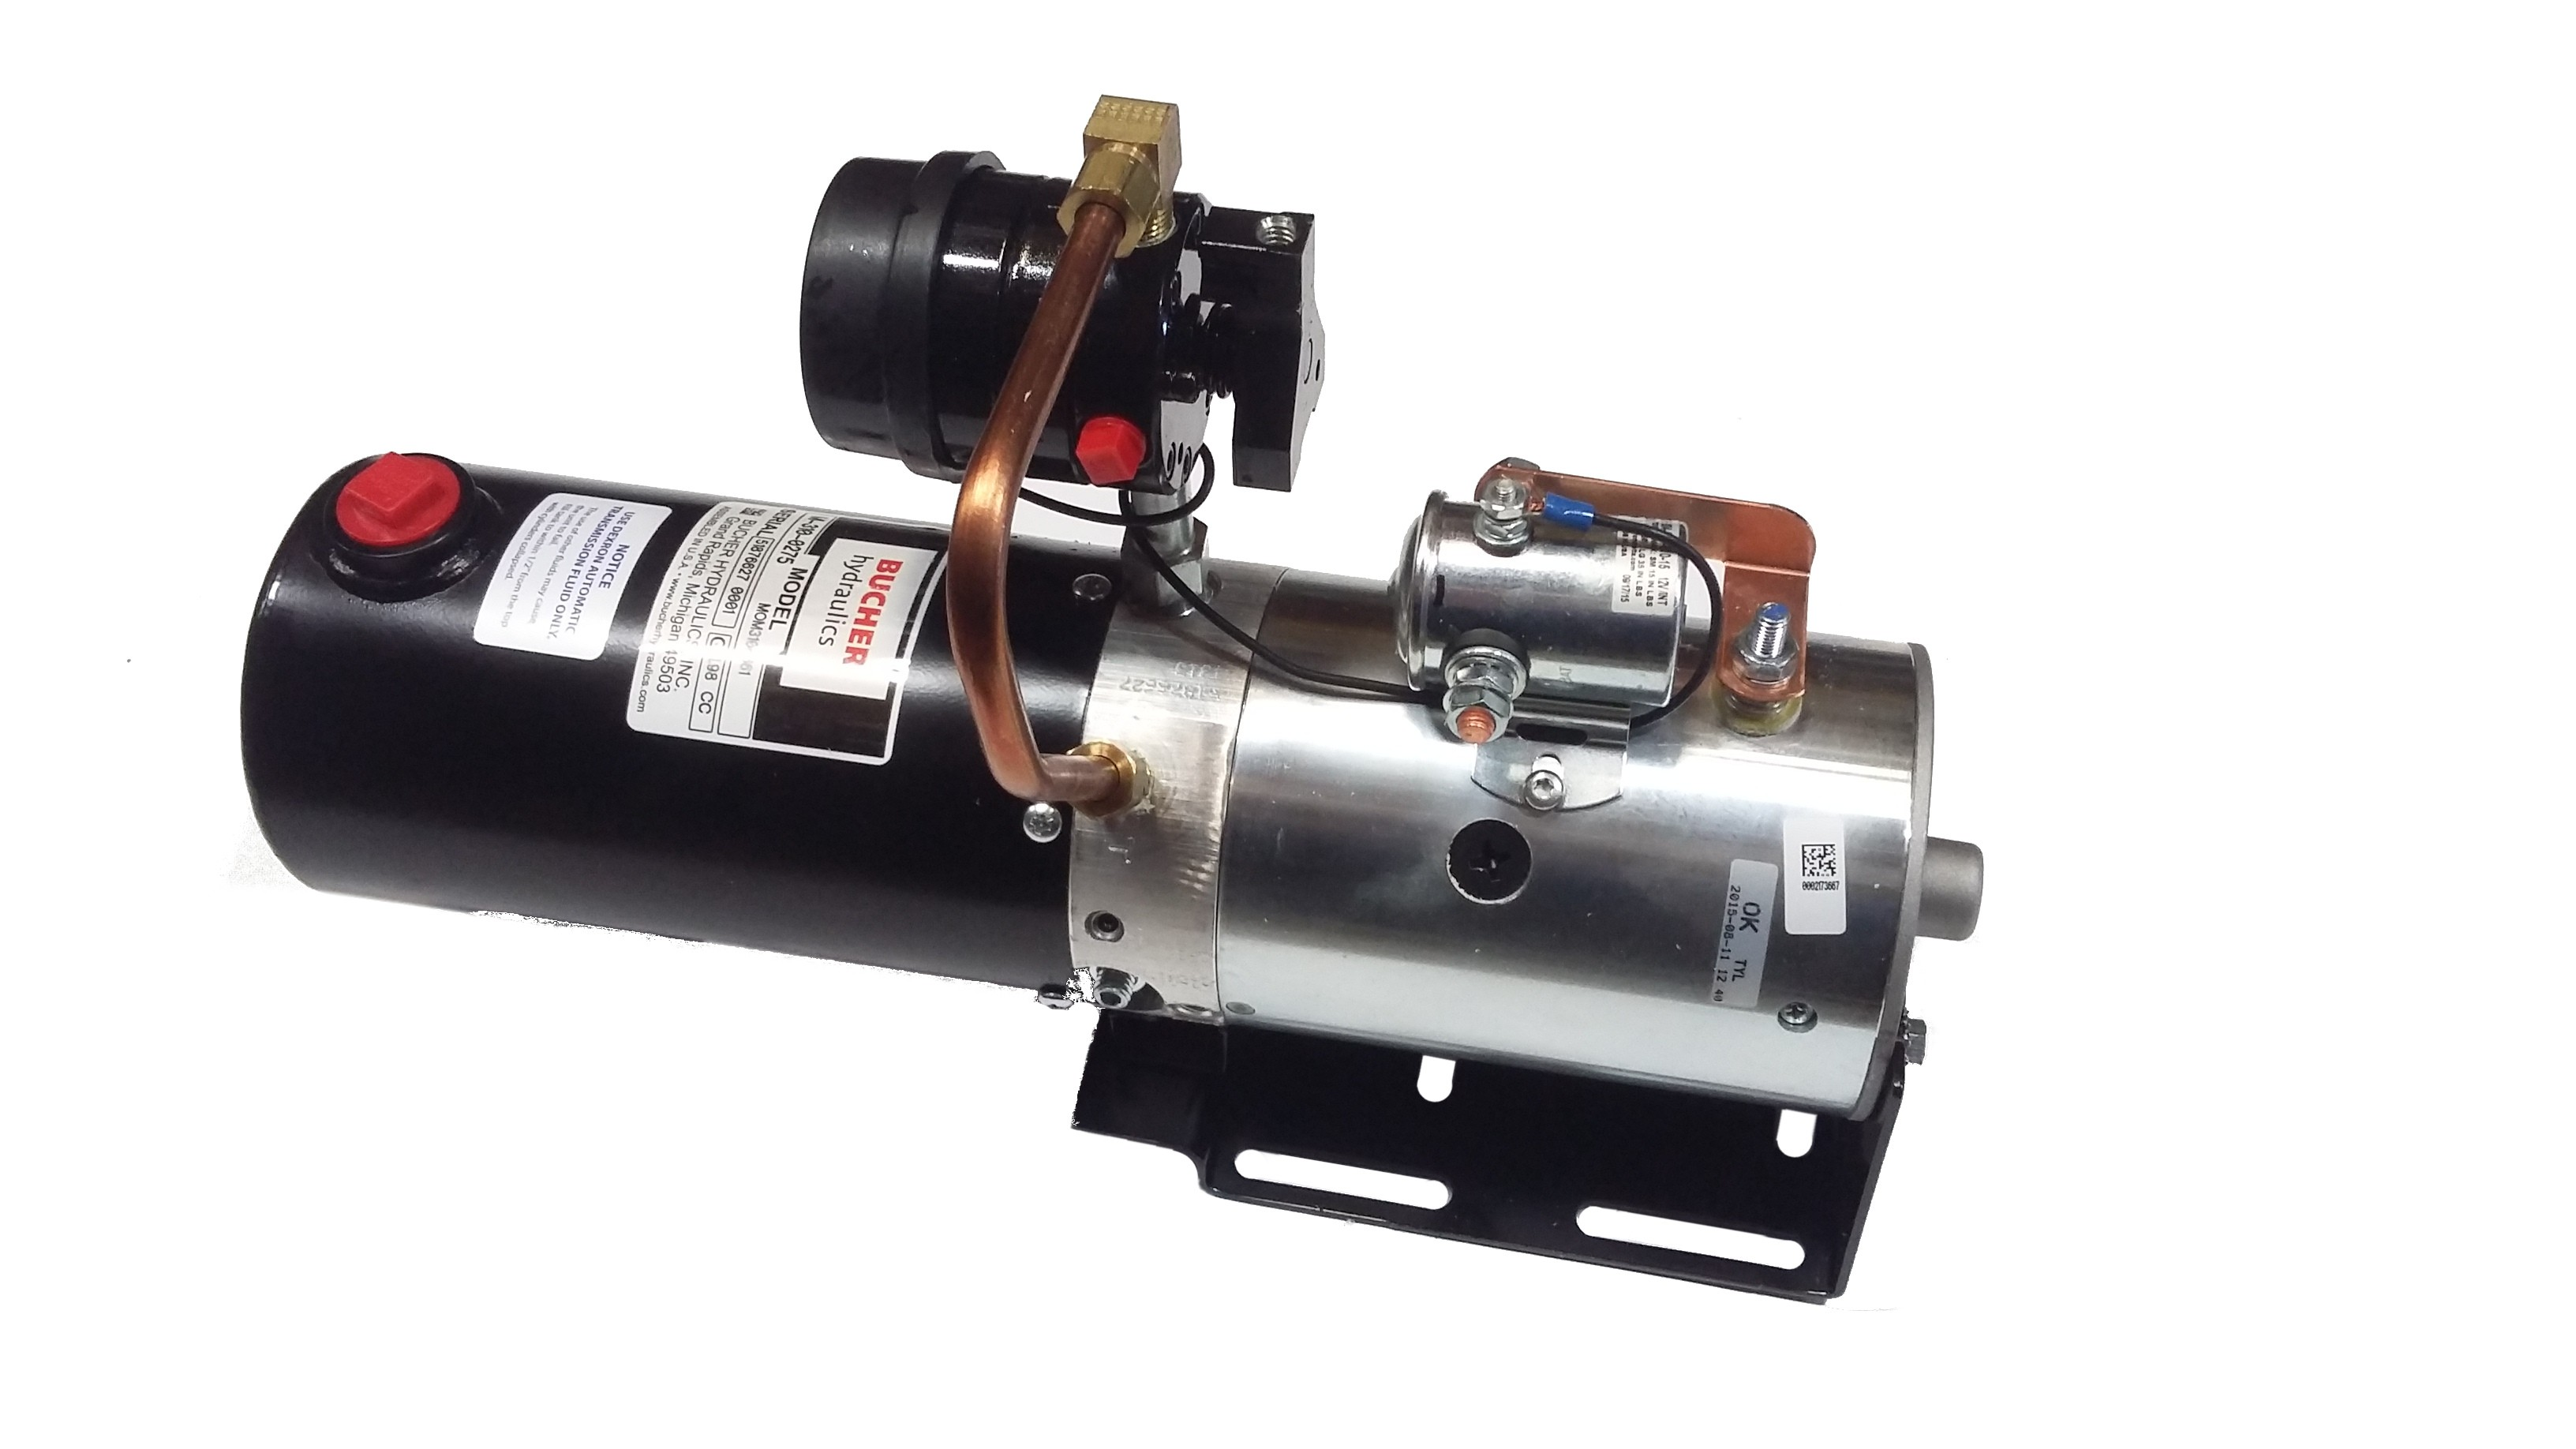 Transmission Repair Cost >> Monarch 12 Volt Dc Power Unit - Hydraulics, Pneumatics and Power Transmission at Beiler Hydraulics